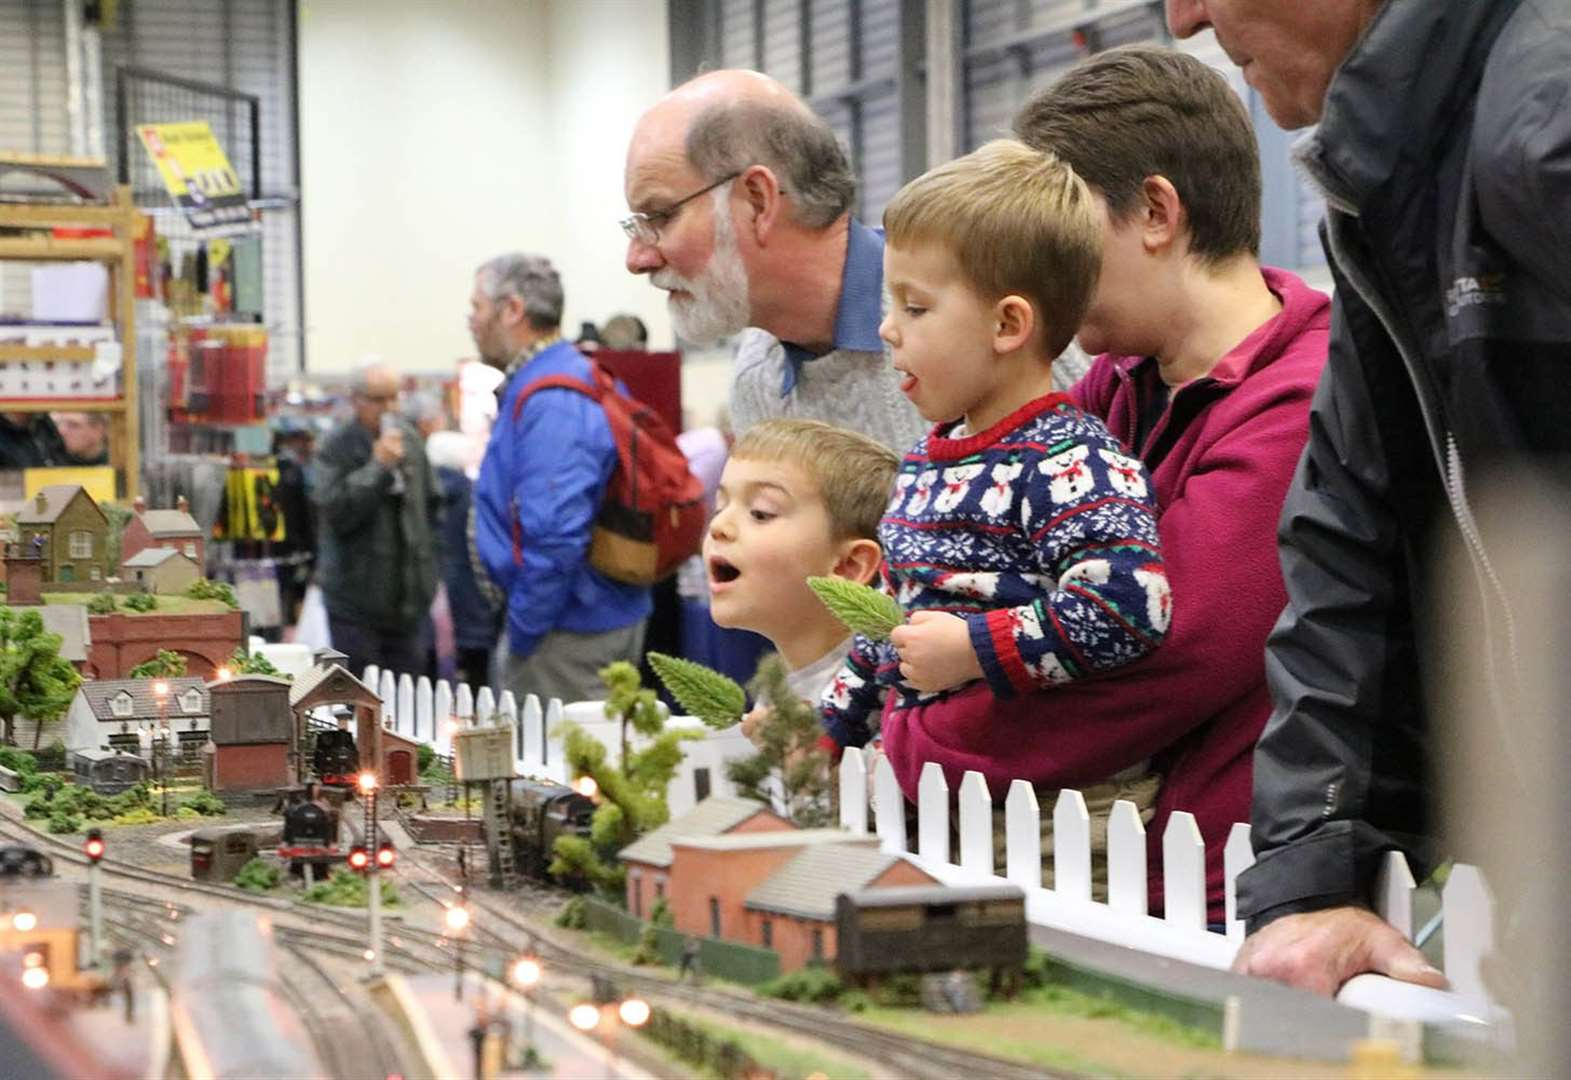 Full steam ahead for rail exhibition at Peterborough this weekend